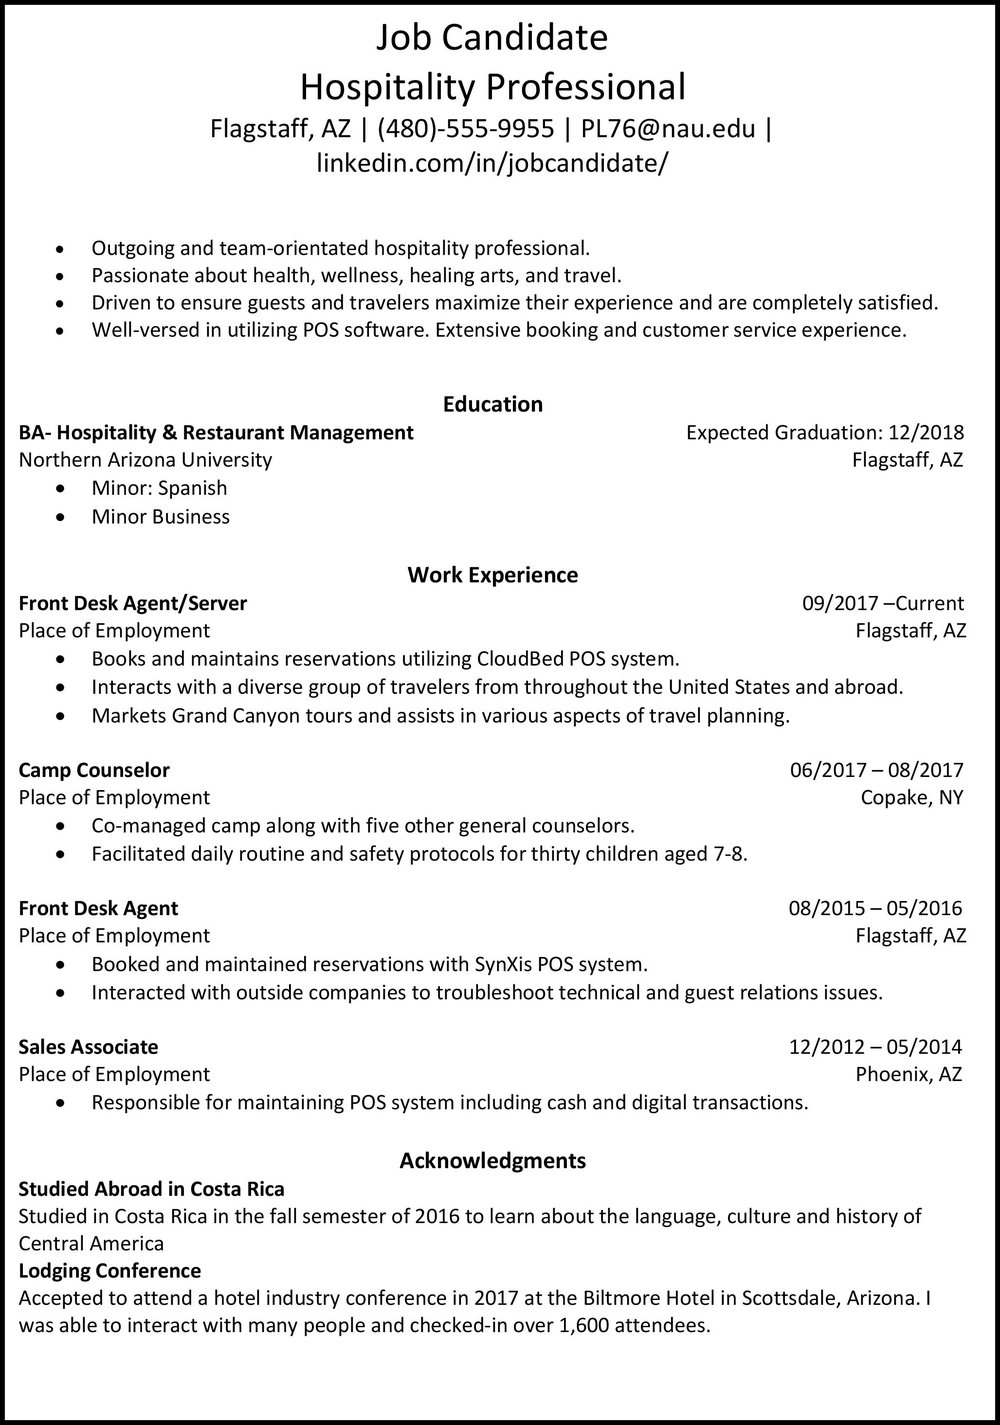 Sample_Resume_Mar15.jpg